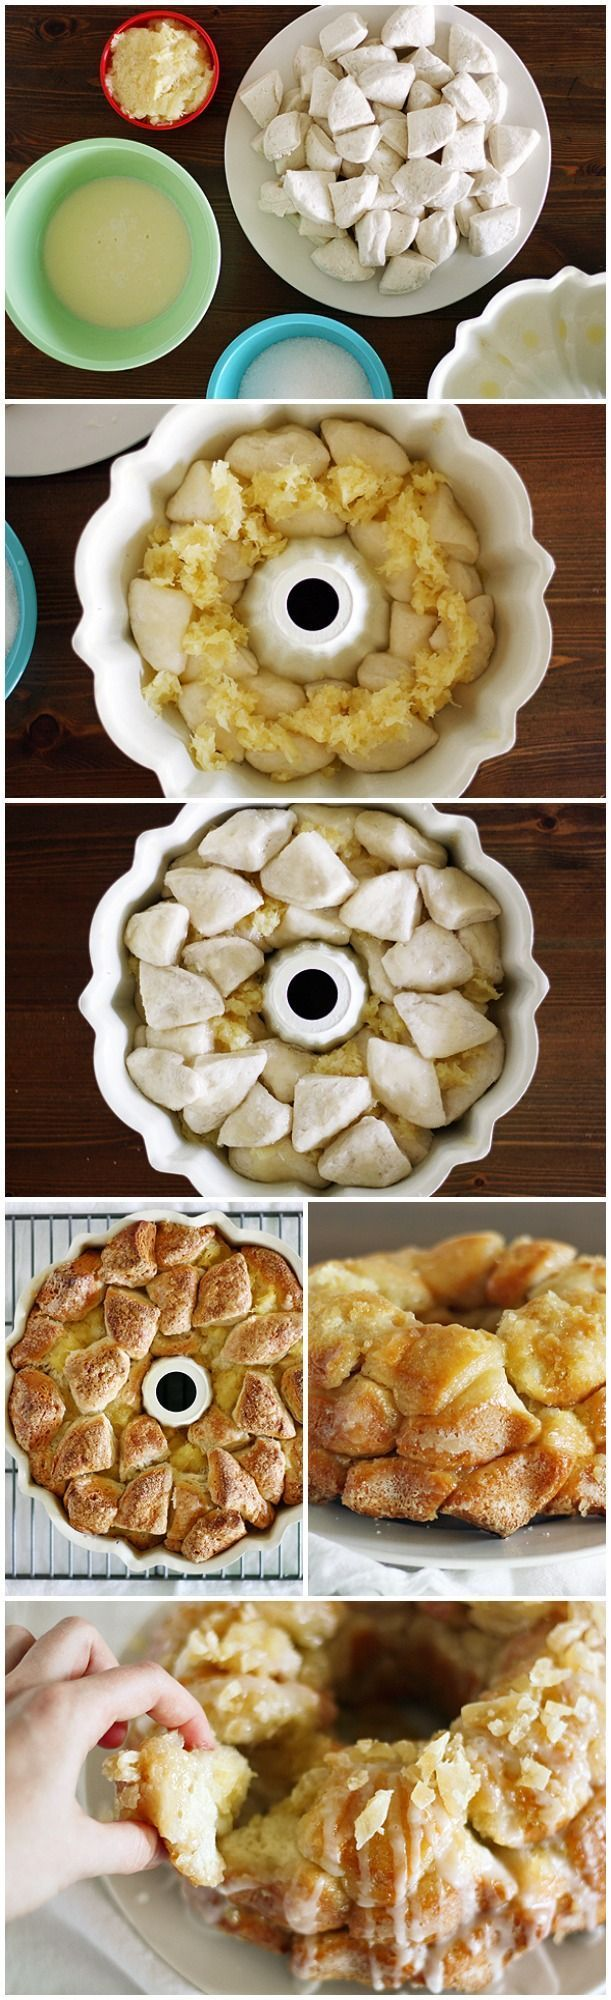 images of pineapple monkey bread recipes | Piña Colada Monkey Bread | Favorite Recipes